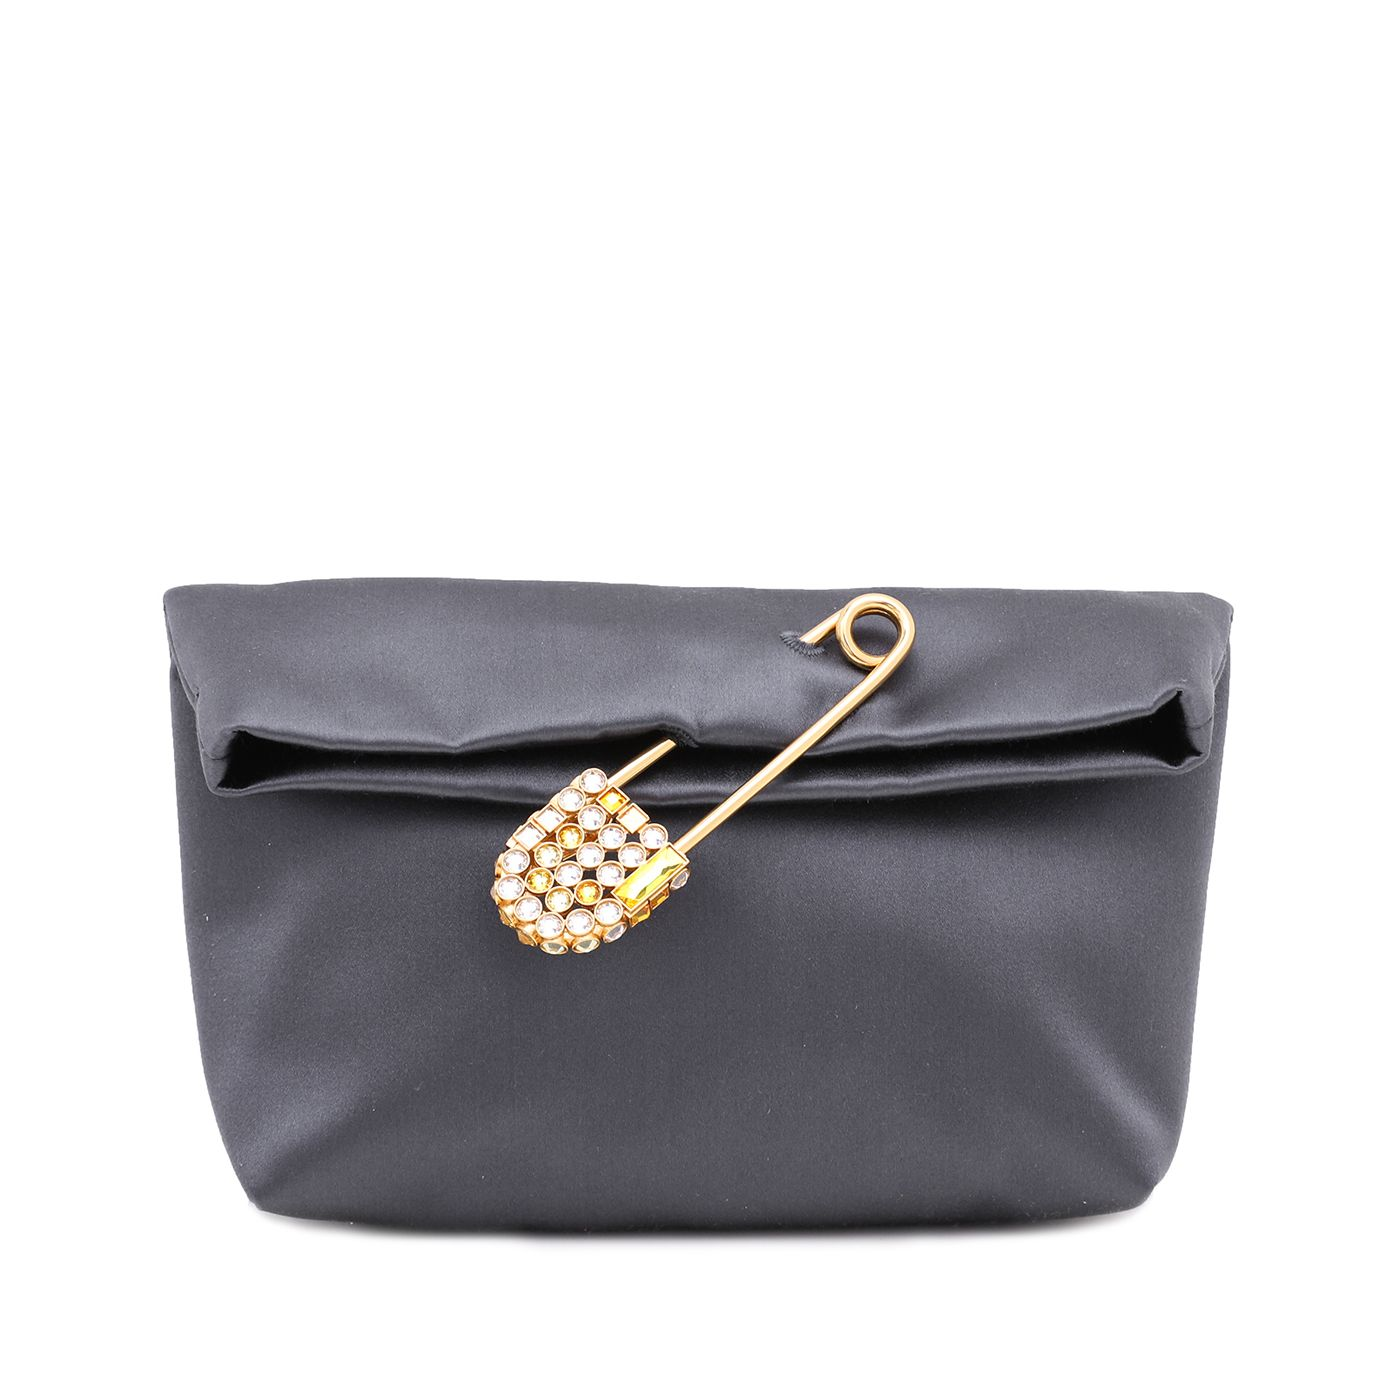 Burberry Gray Pin Satin Clutch